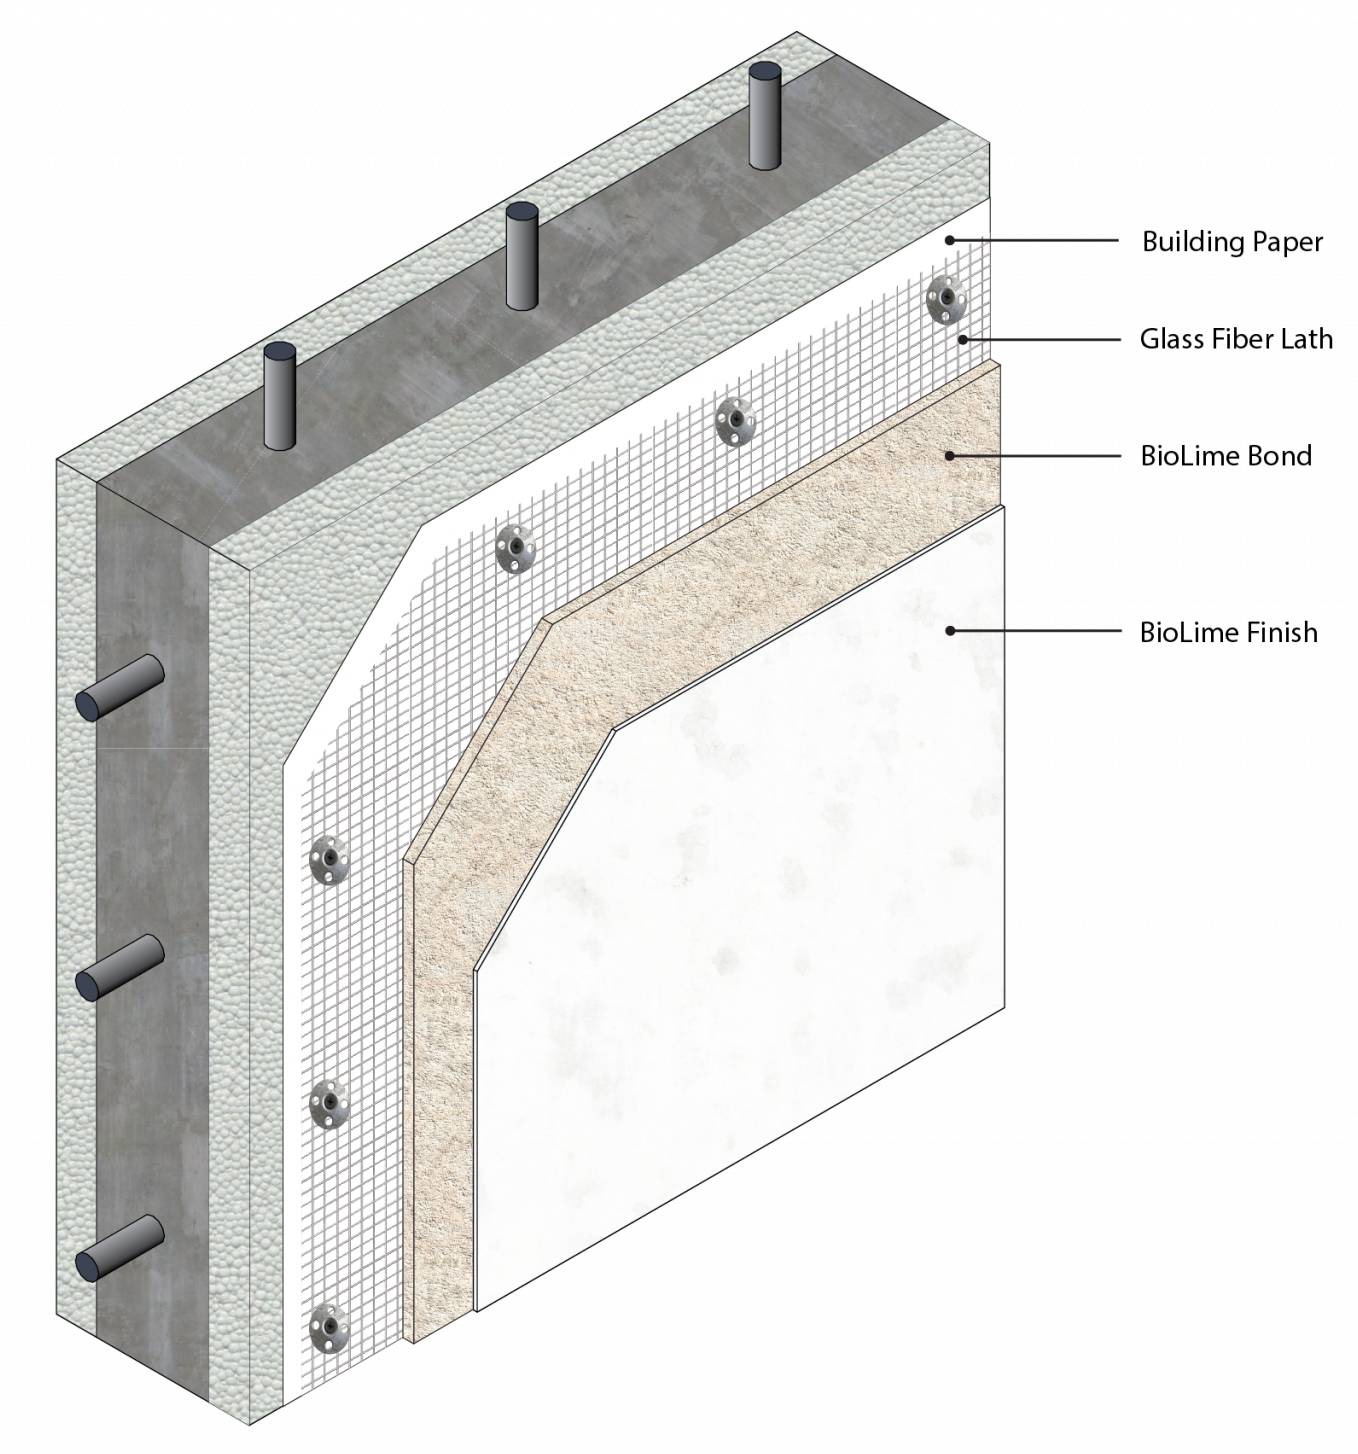 3D isometric image of BioLime plaster for an ICF wall system